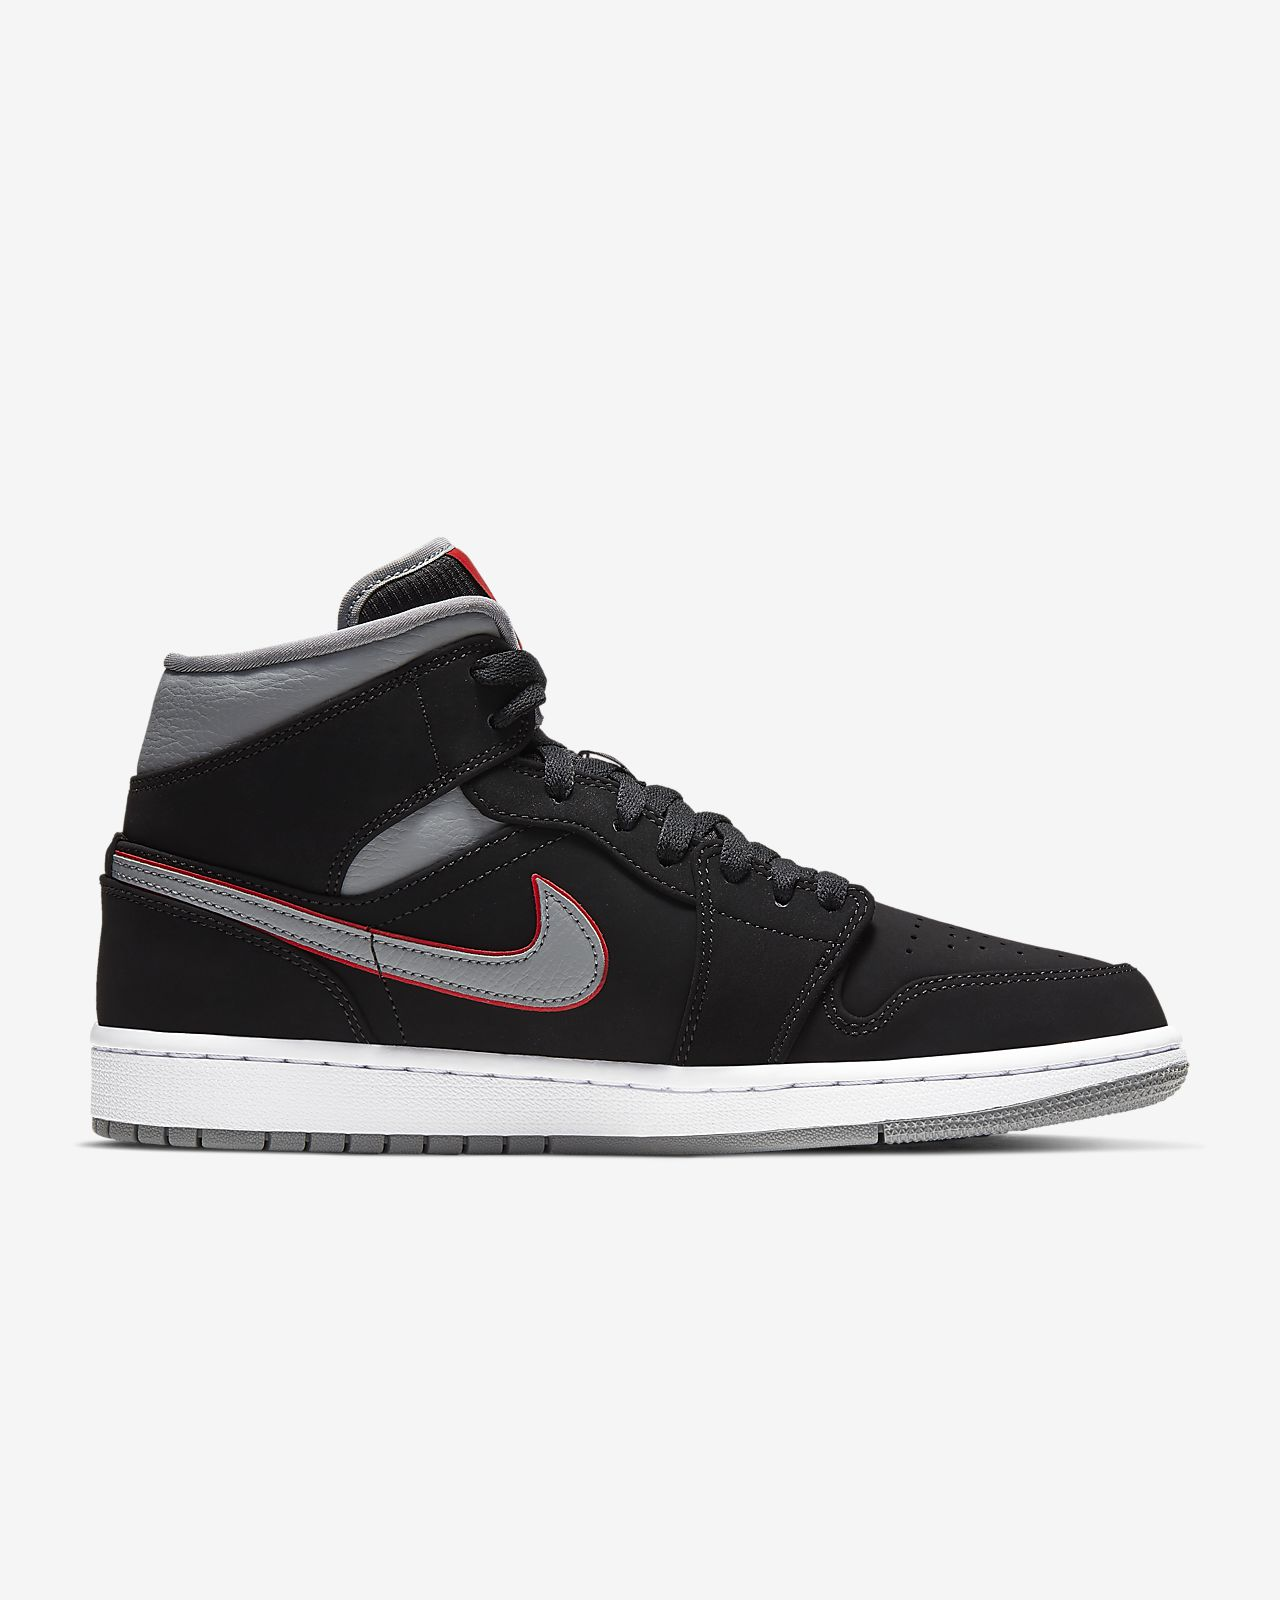 98eaa9c9aa8872 Air Jordan 1 Mid Men s Shoe. Nike.com GB